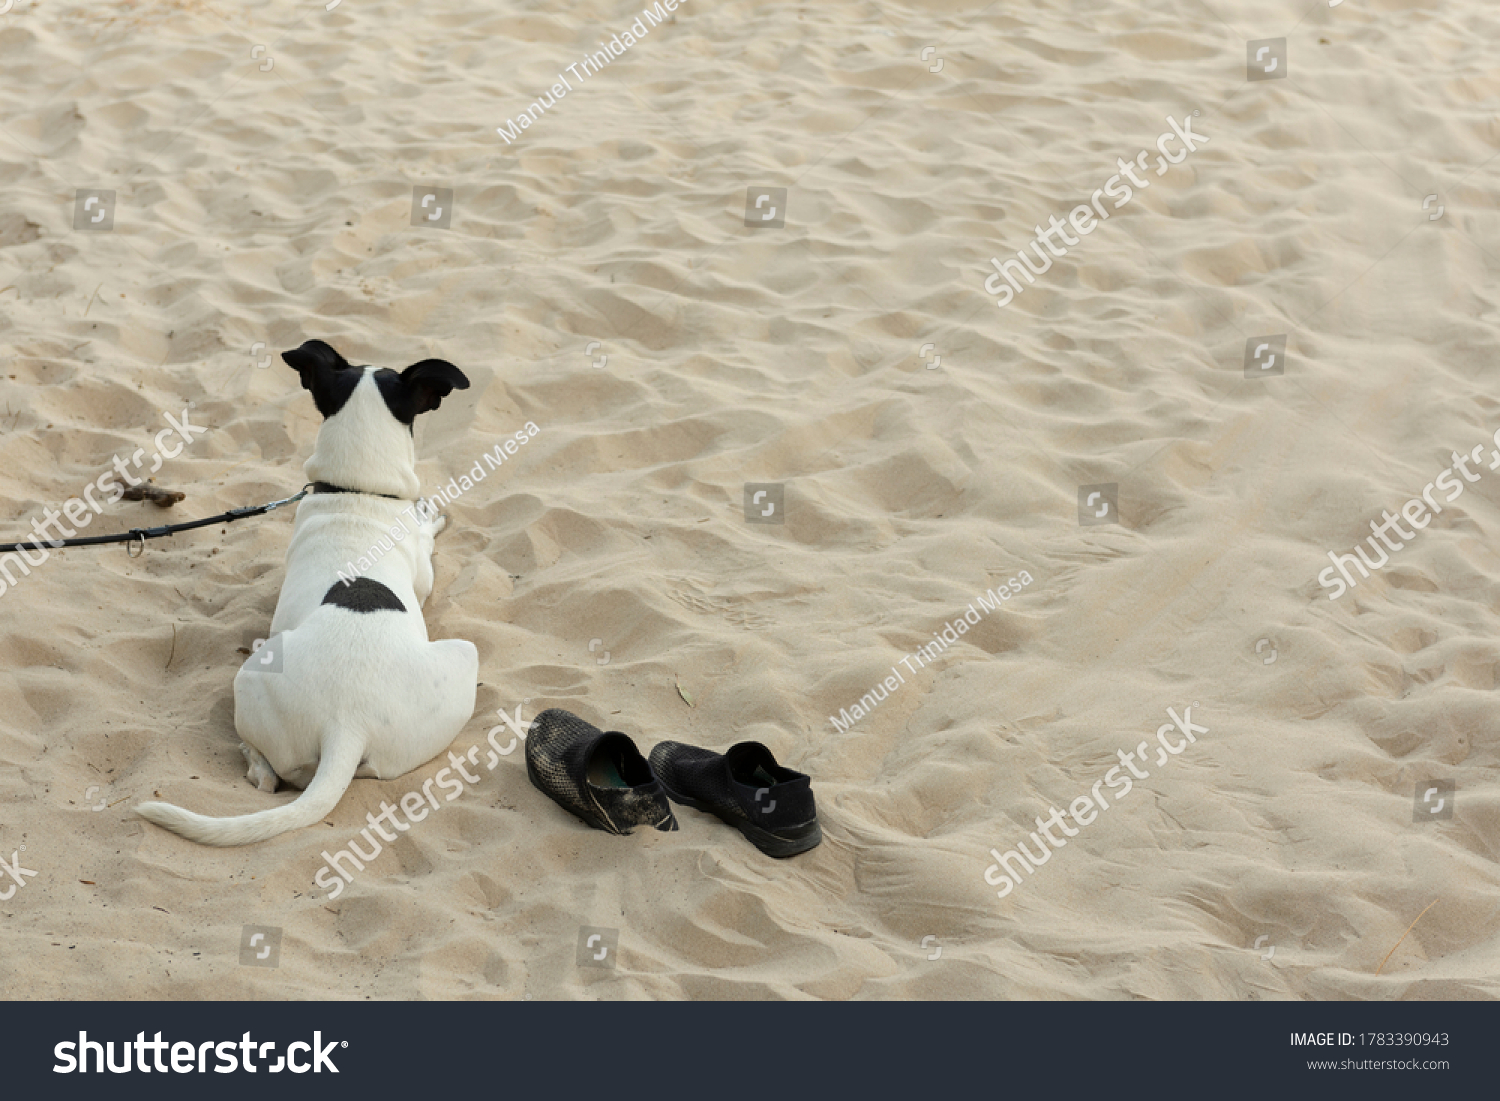 A dog on the beach watches over his master's shoes